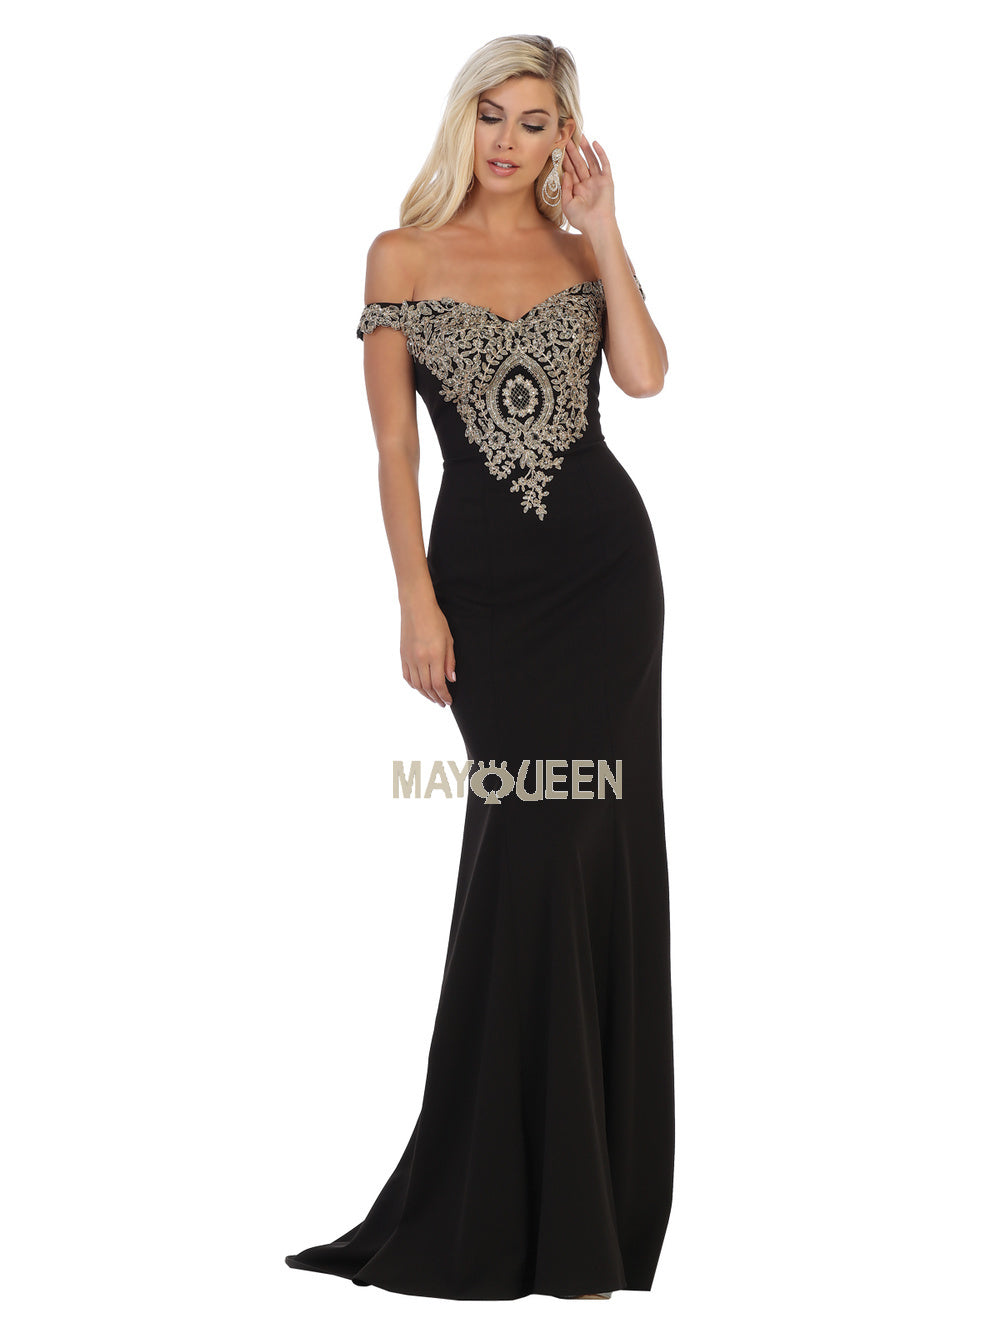 MQ 1640 - Beaded Lace Applique Off-the-Shoulder Fit & Flare with Beaded Lace Train - Diggz Prom